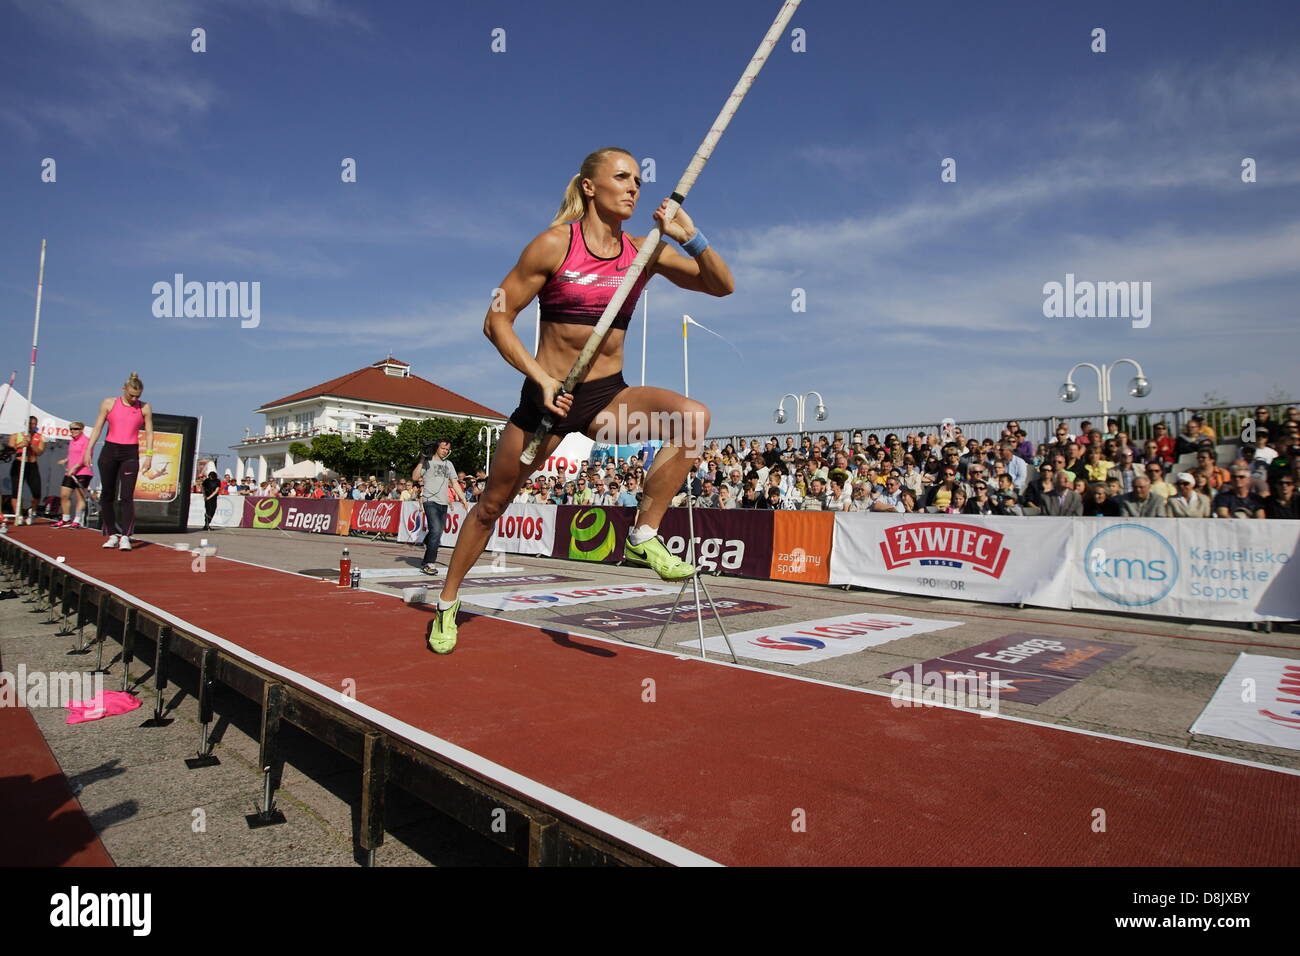 "Sopot, Poland 30th, May 2013 The ""Pole Vault on Pier"" in Sopot competition near the Sopot's Pier. Anna Rogowska - Stock Image"